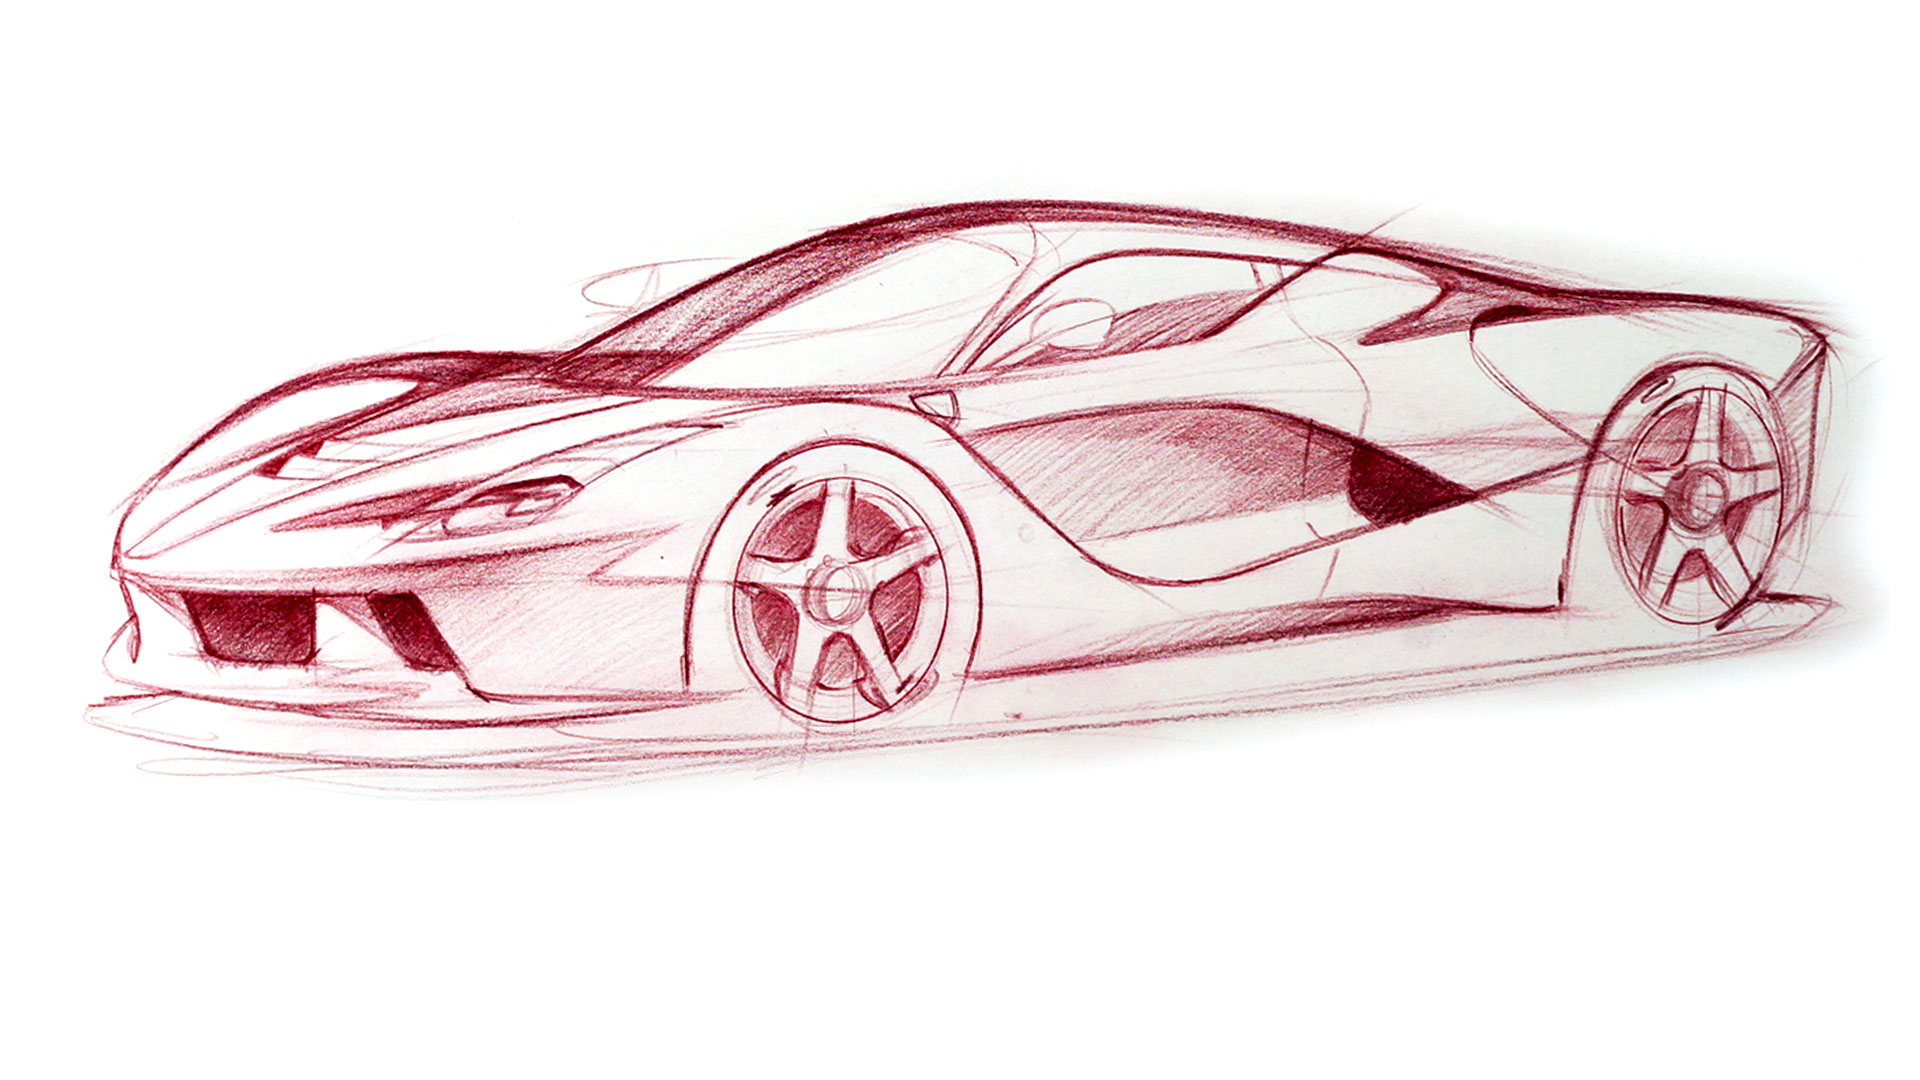 1920x1080 Car Design Drawings Developing Awesome Line Quality